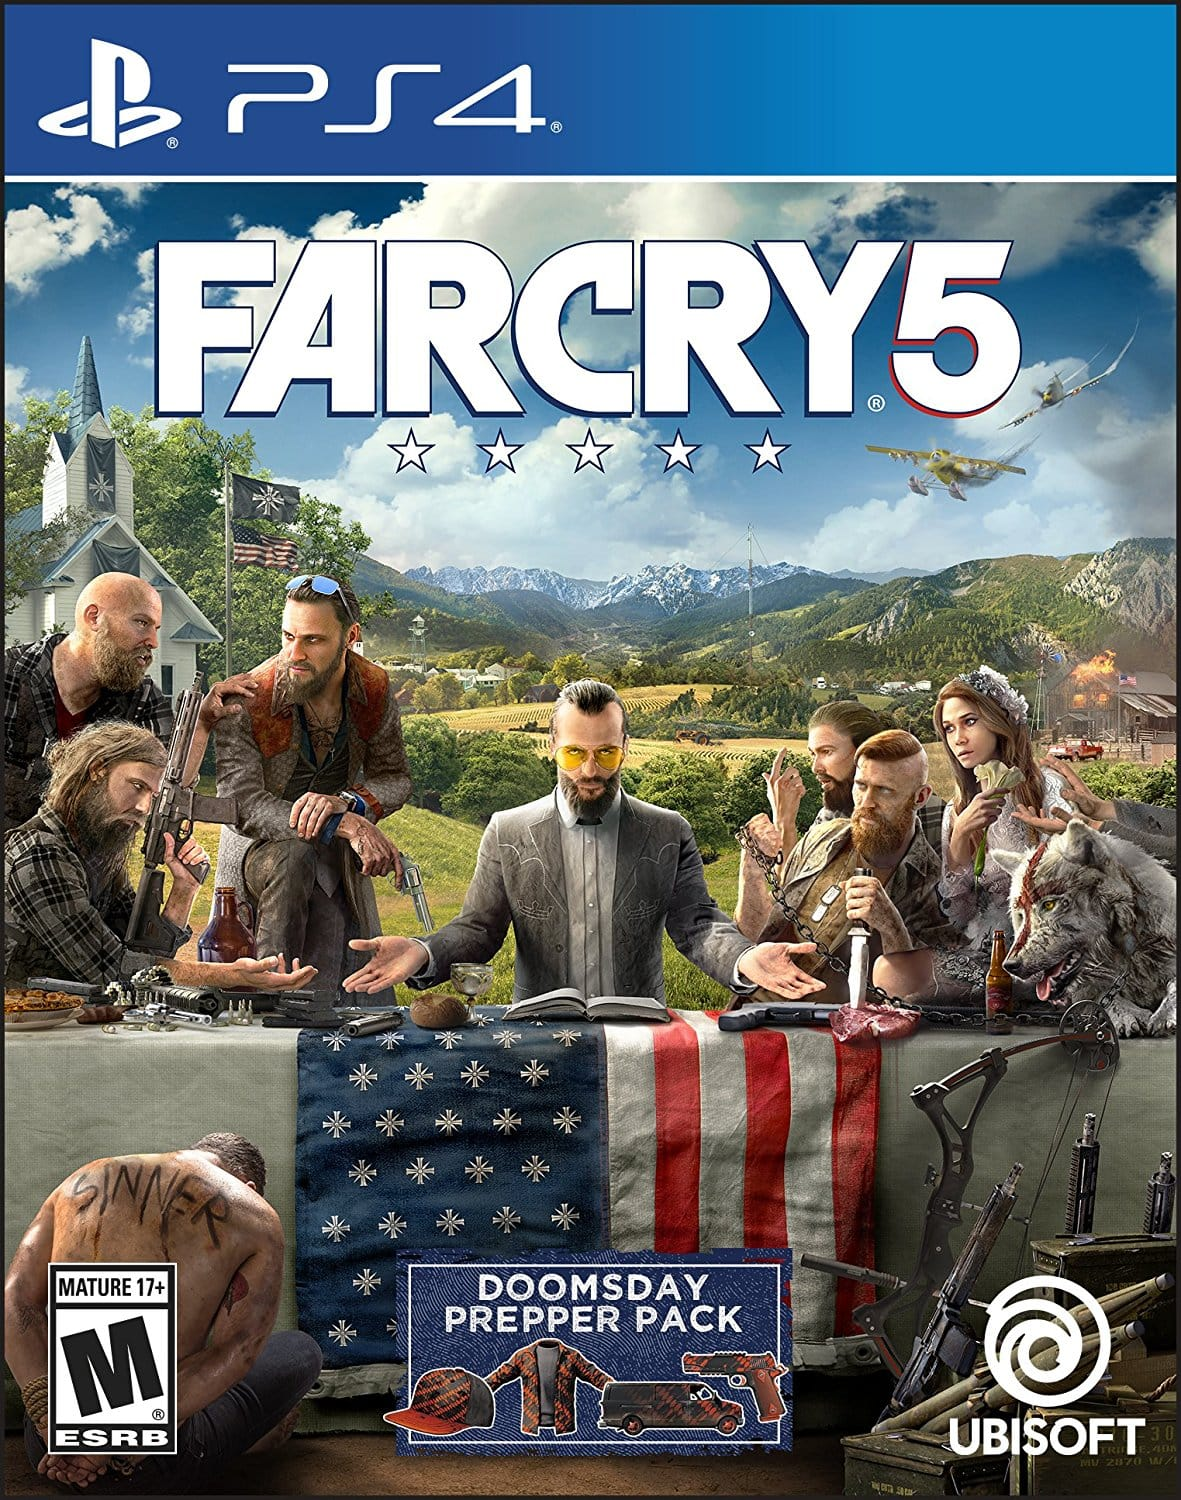 Far Cry 5 - PlayStation 4 Standard Edition [Disc, Standard, PlayStation 4] $39.99